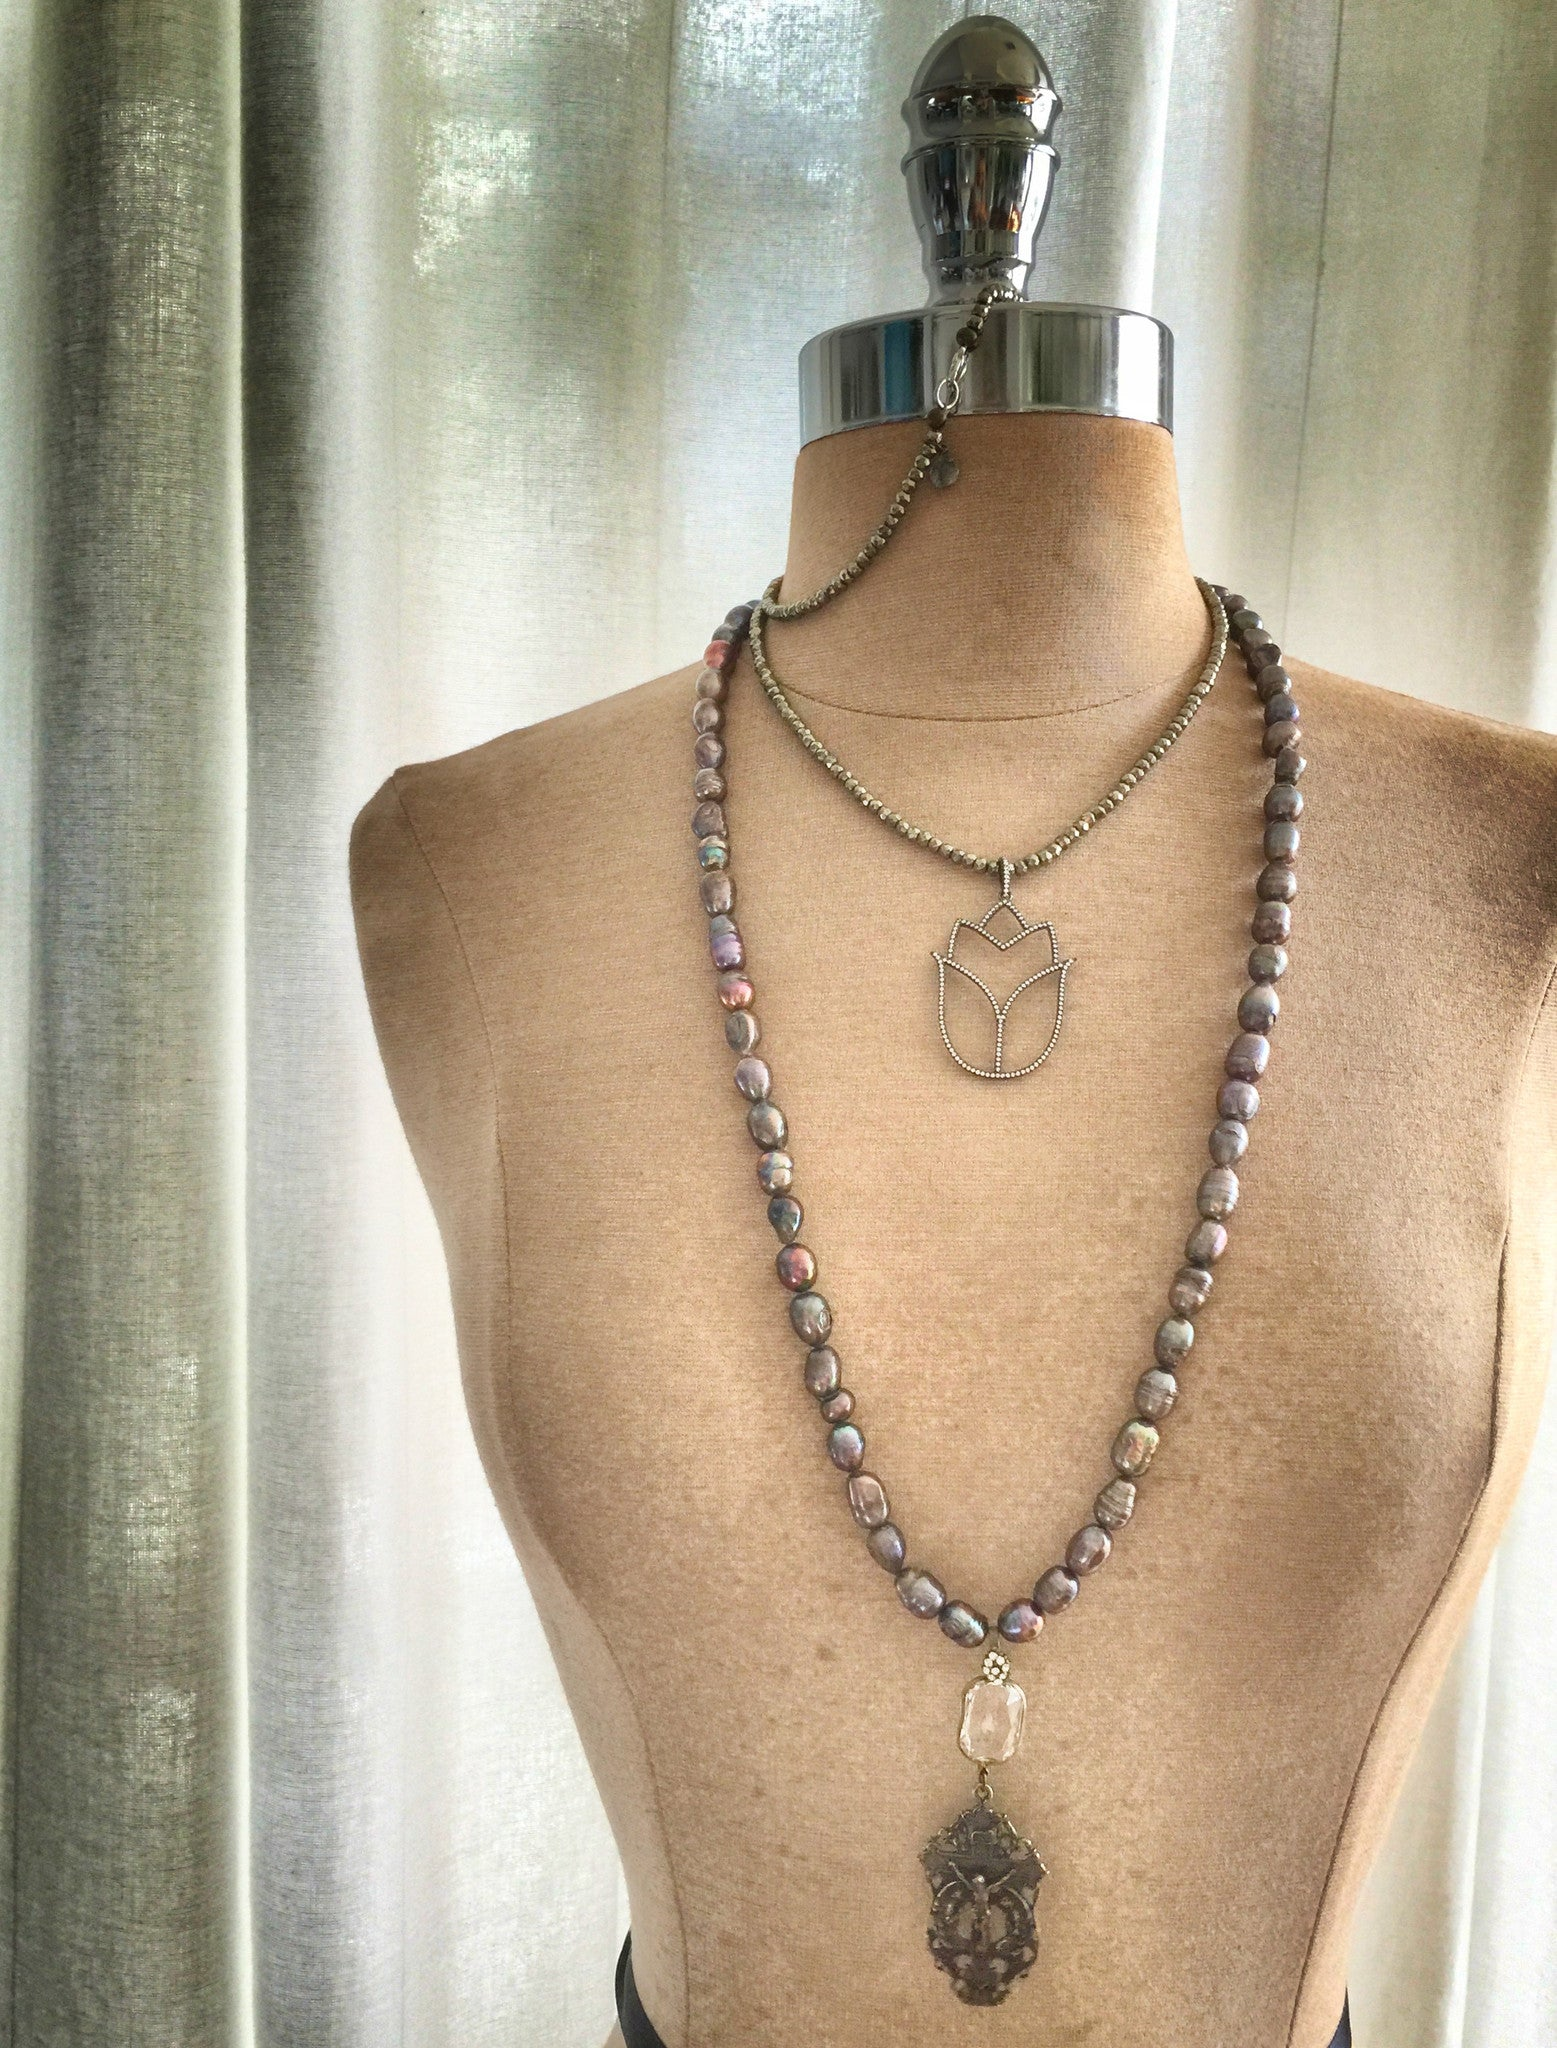 St. Diana Chateau Pearl Necklace